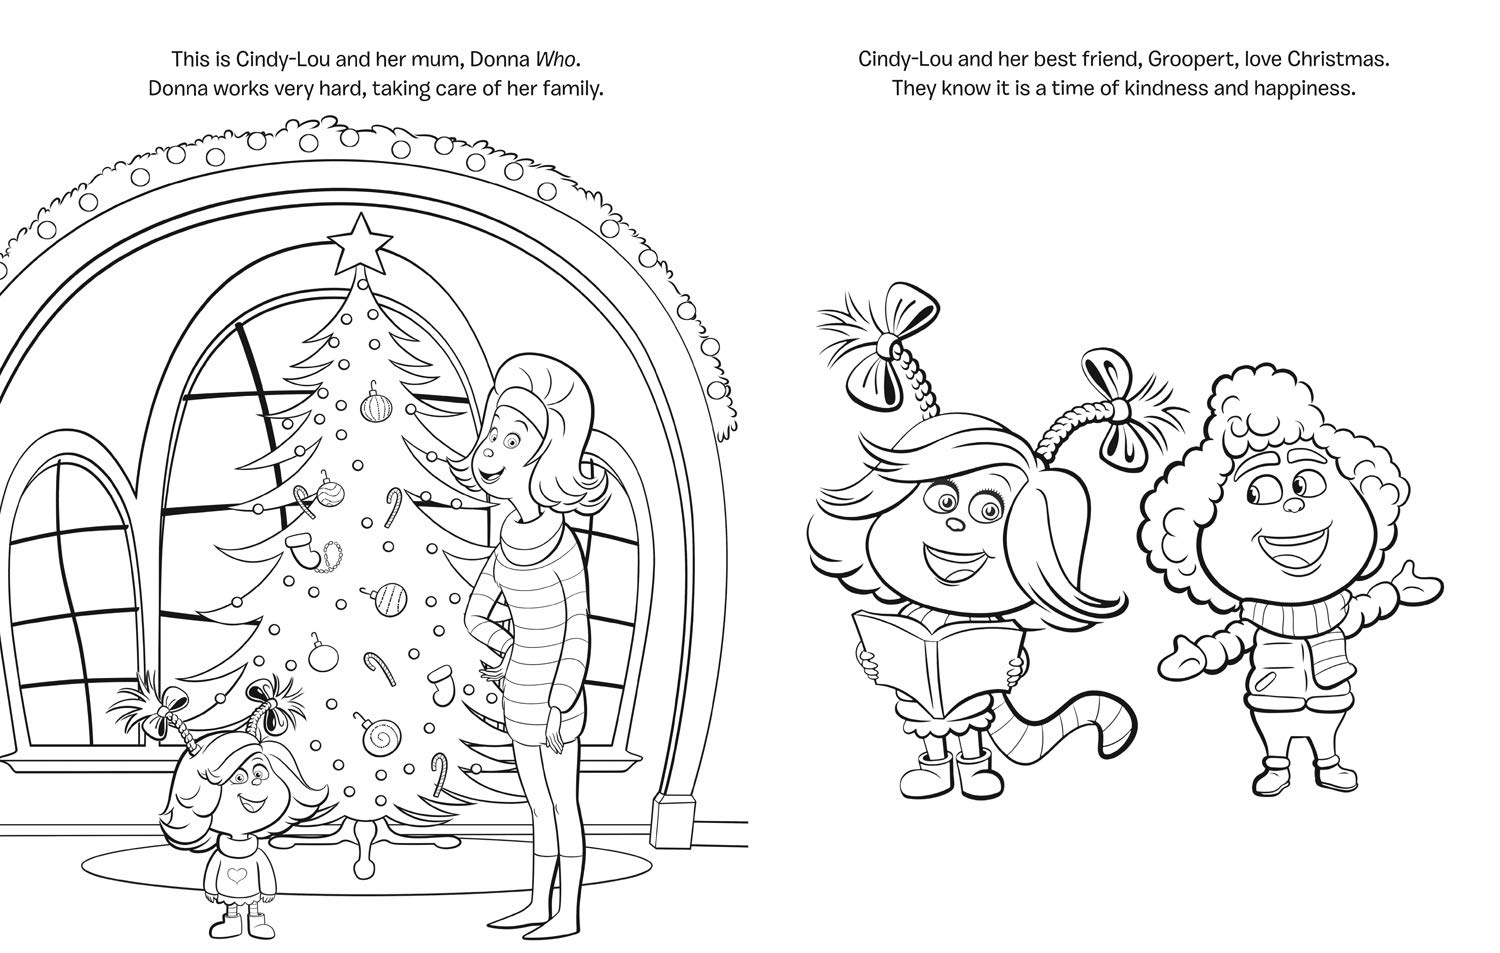 The Grinch Movie Colouring Book Grinch Movie Tie In Amazon